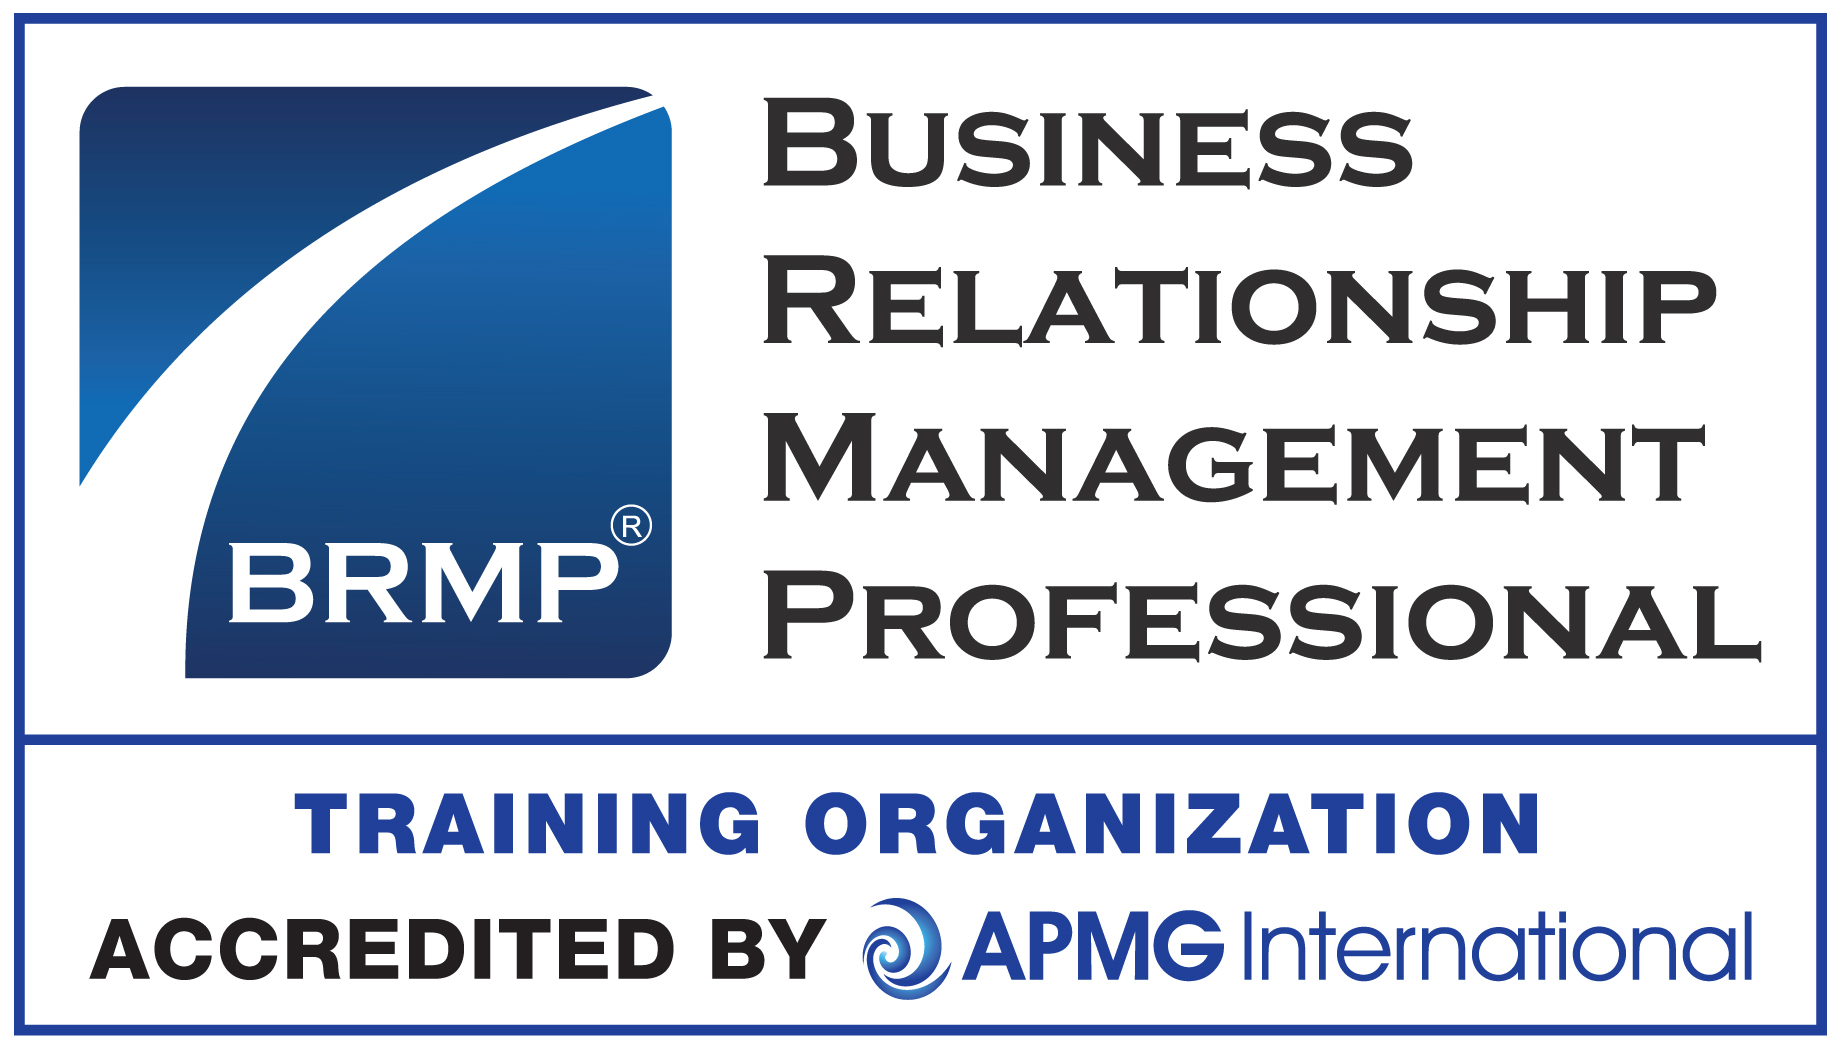 business relationship manager education